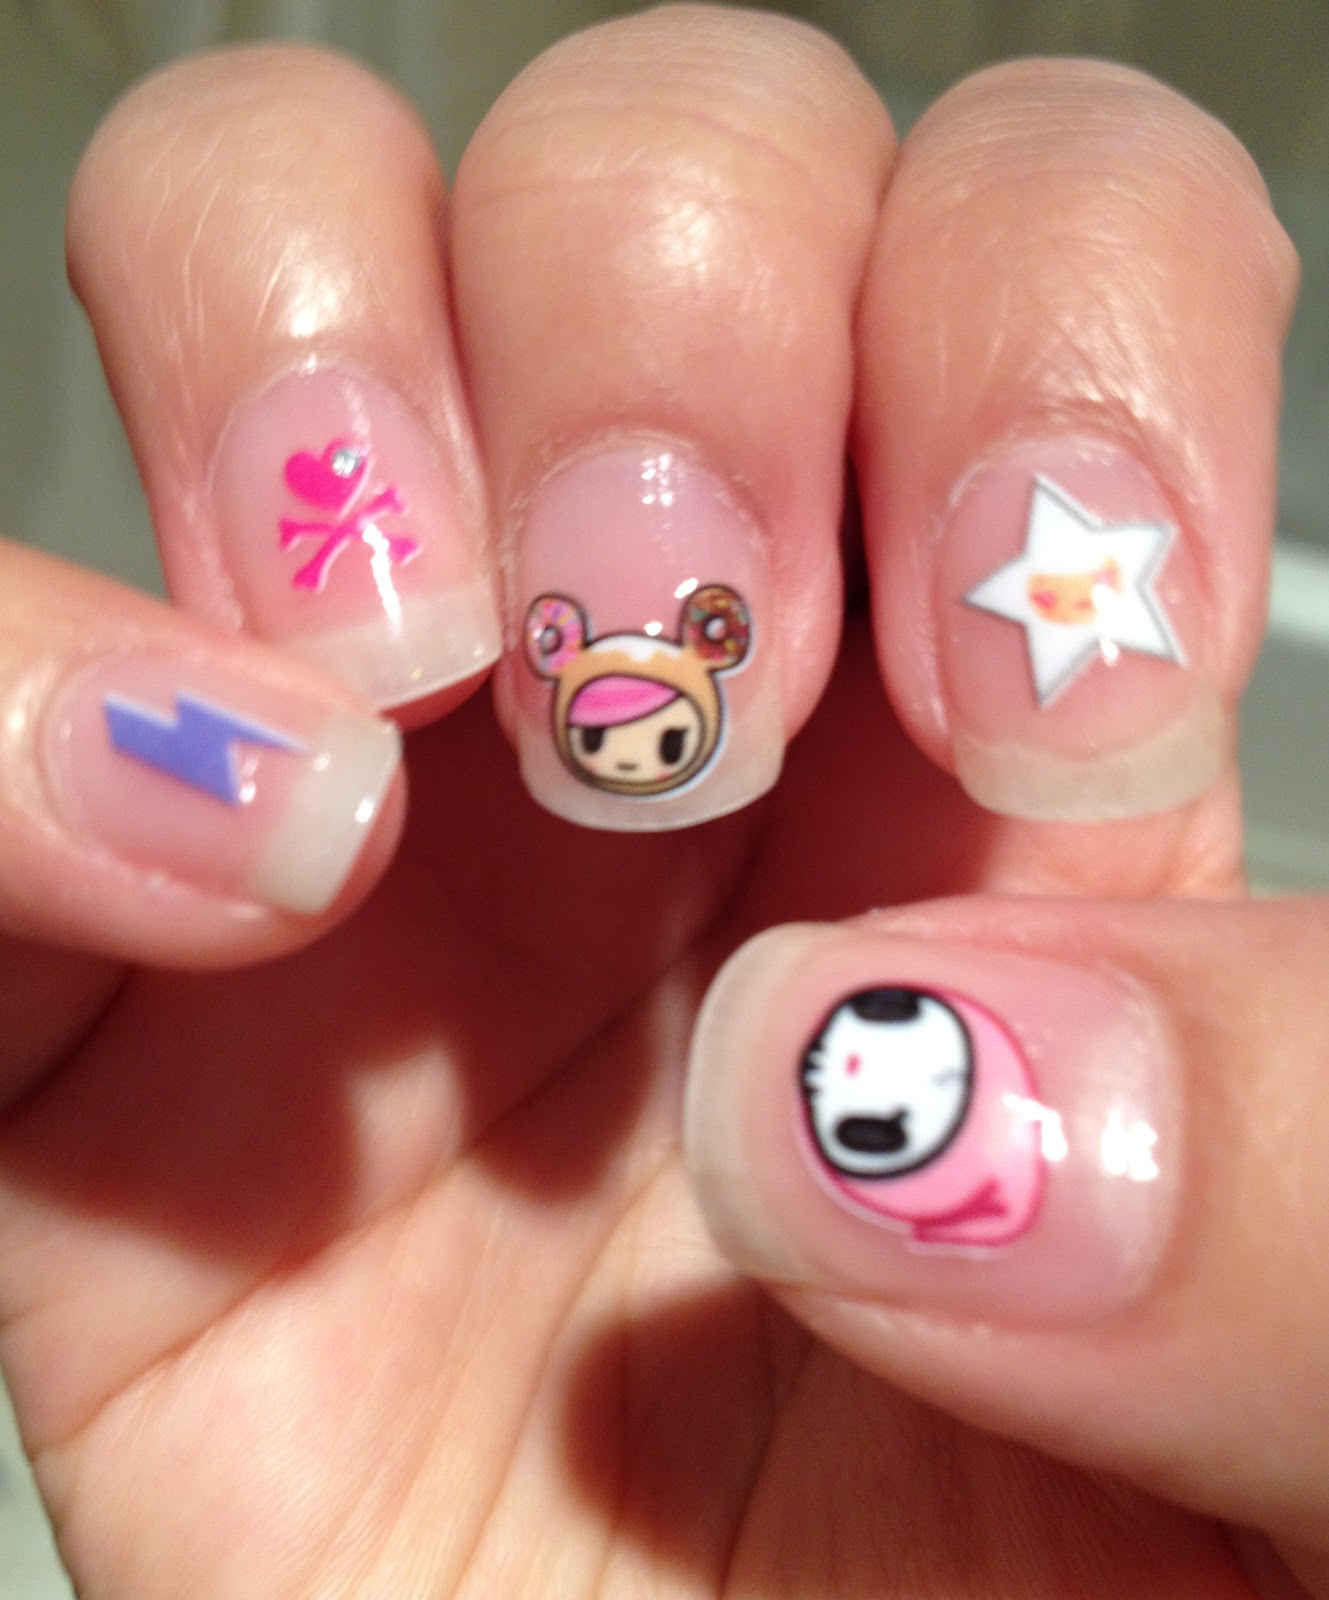 Nail Design With Stickers: Minx nail stickers reviews ping.